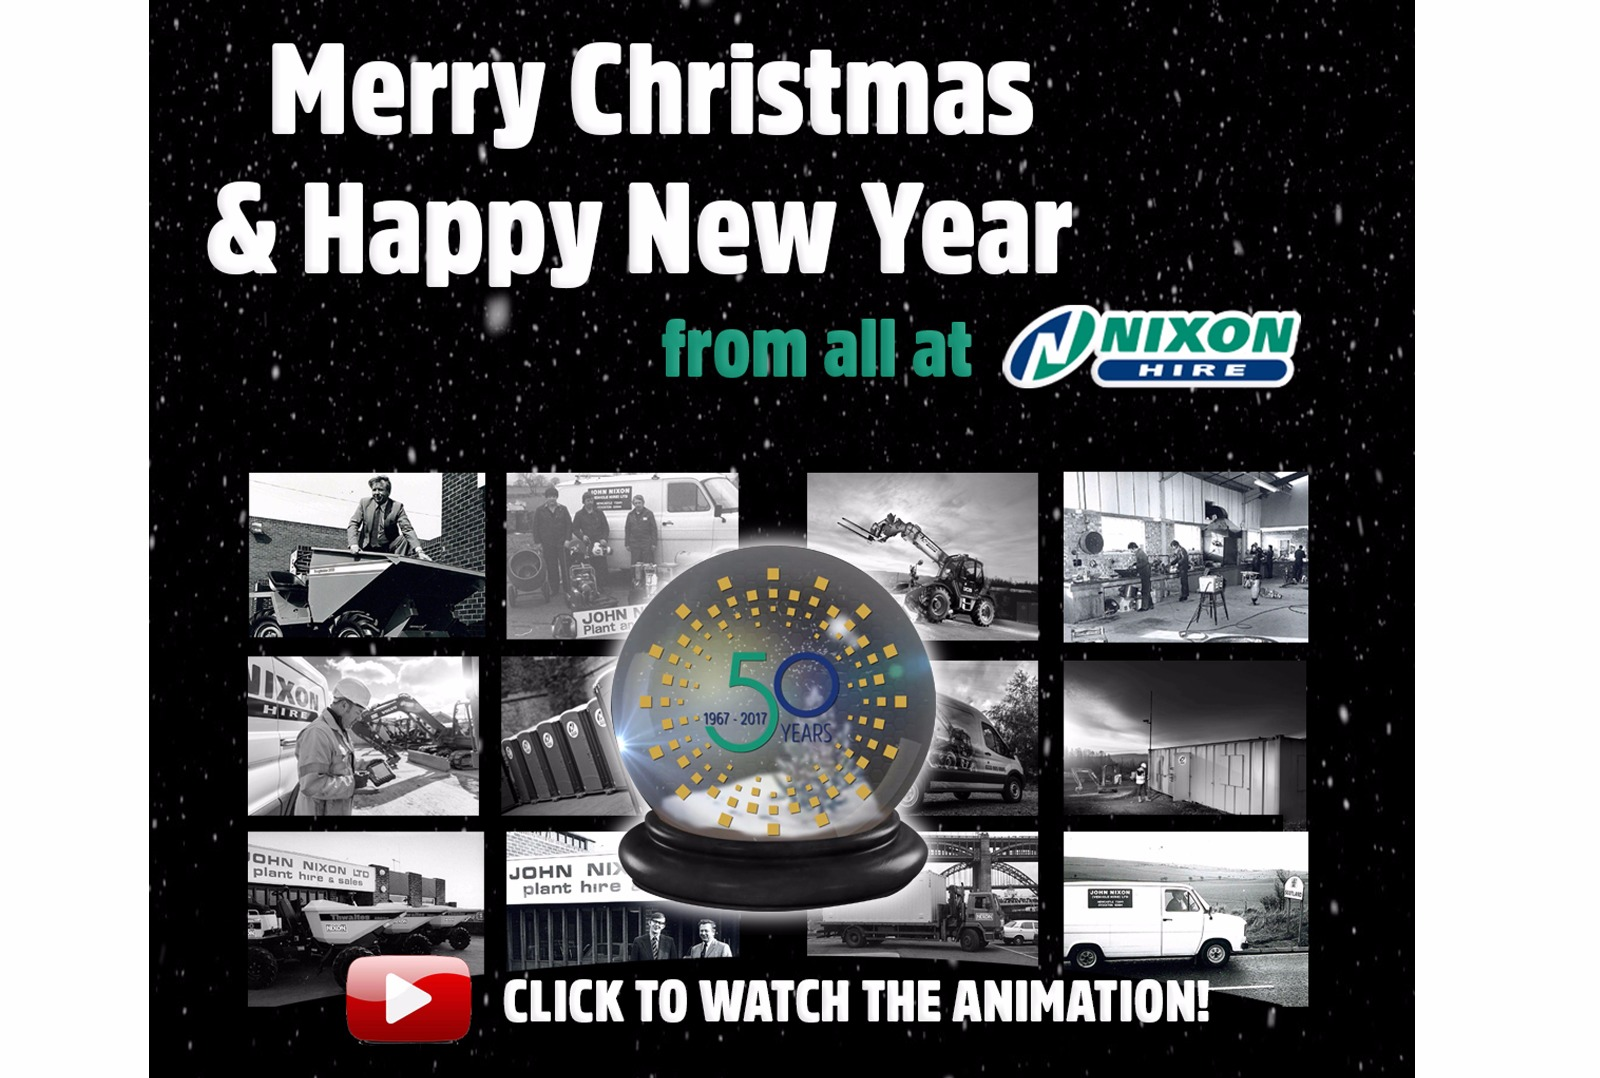 Merry Christmas & Happy New Year from all at Nixon Hire!